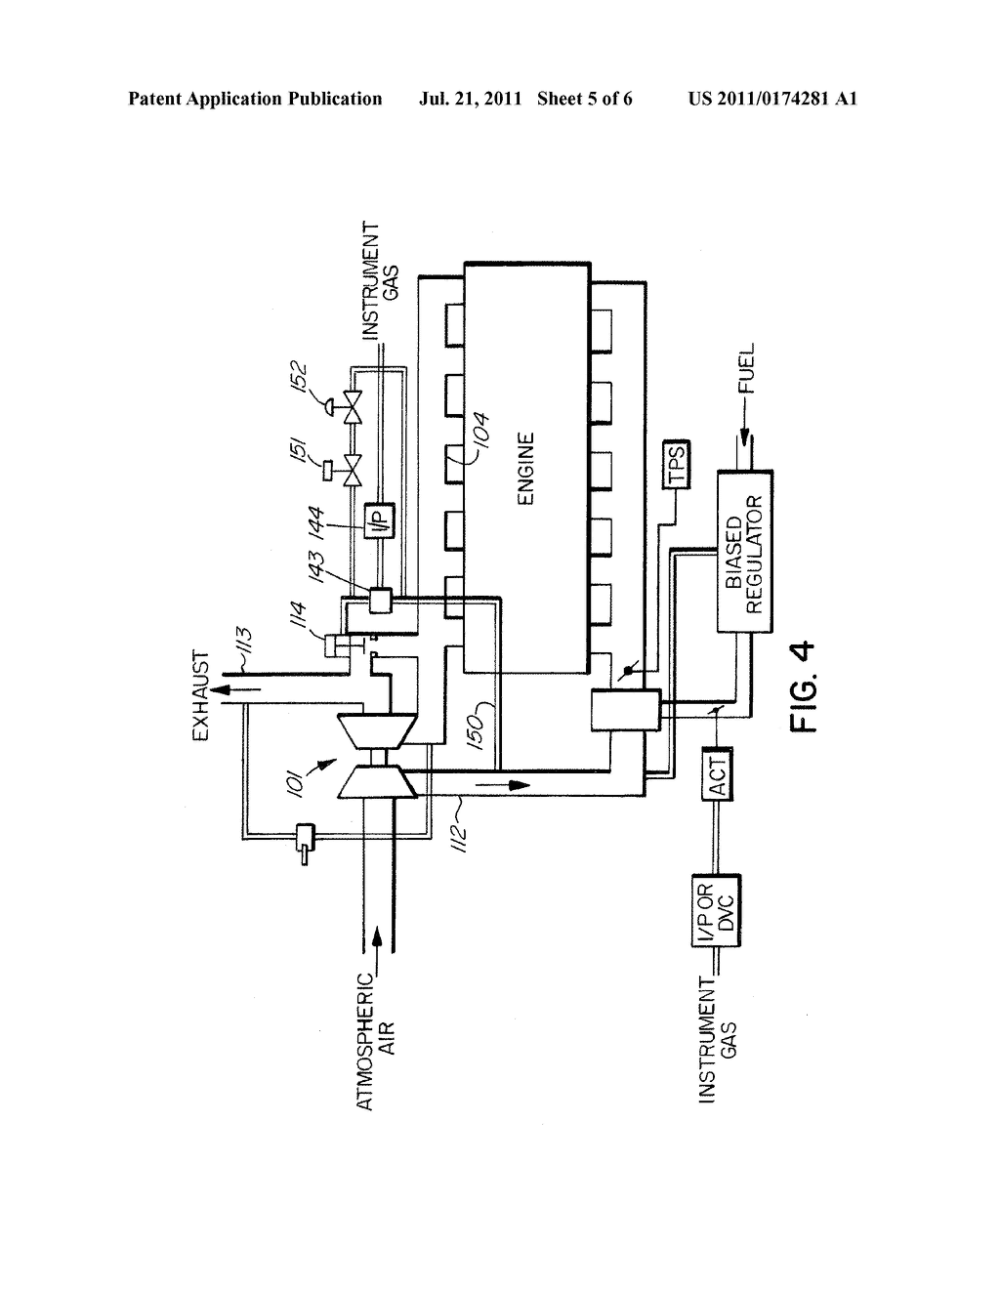 medium resolution of carbureted natural gas turbo charged engine diagram schematic and image 06